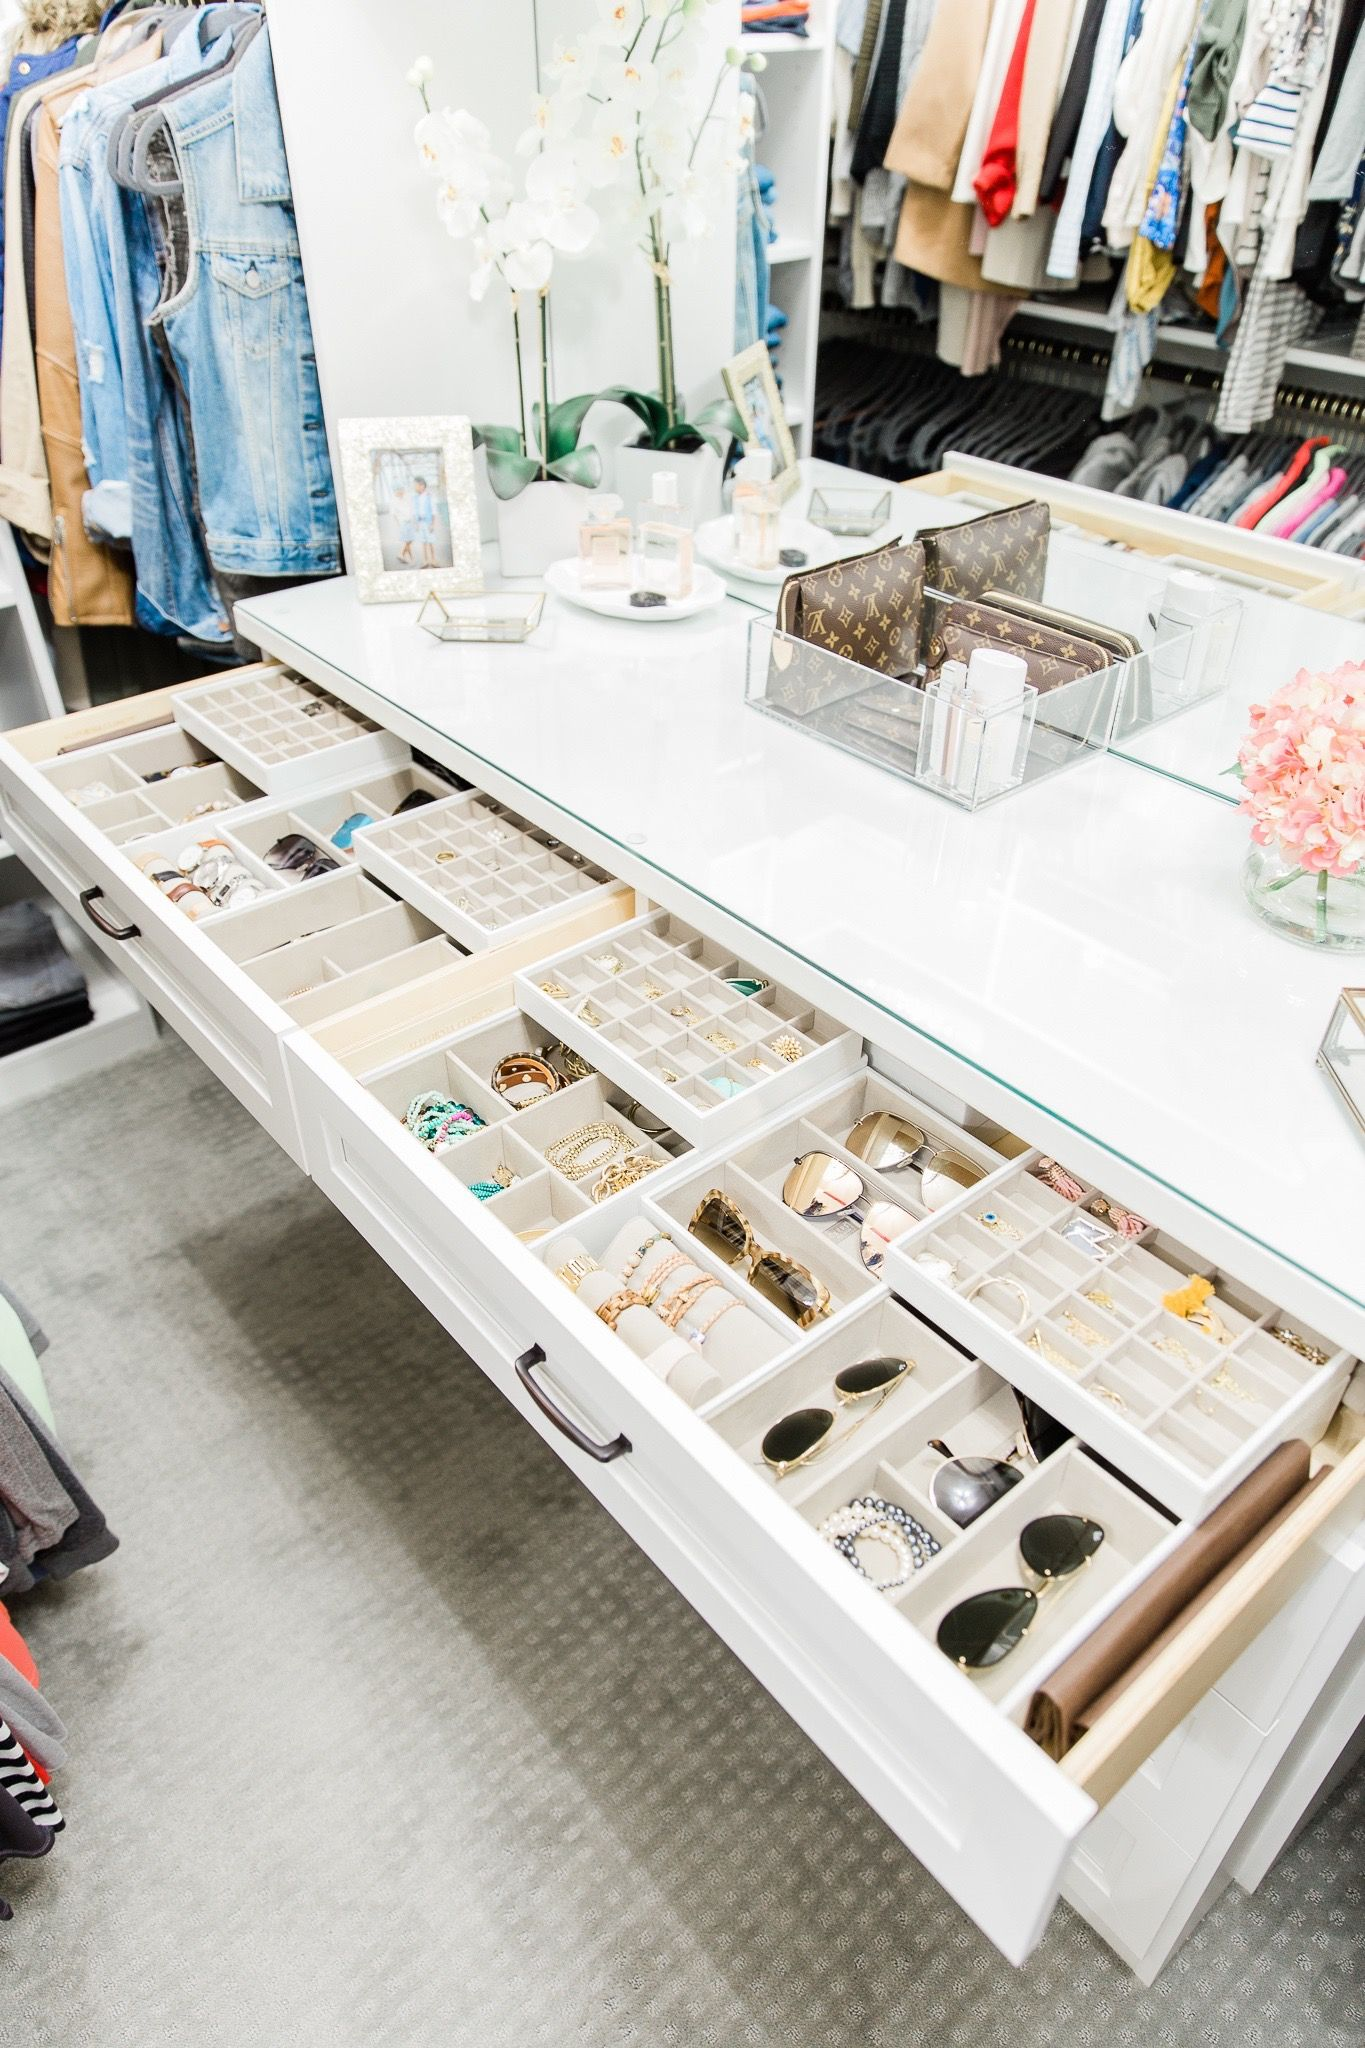 Kleiderschrank Real How To Organize Like A Boss But For Real Life The Closet